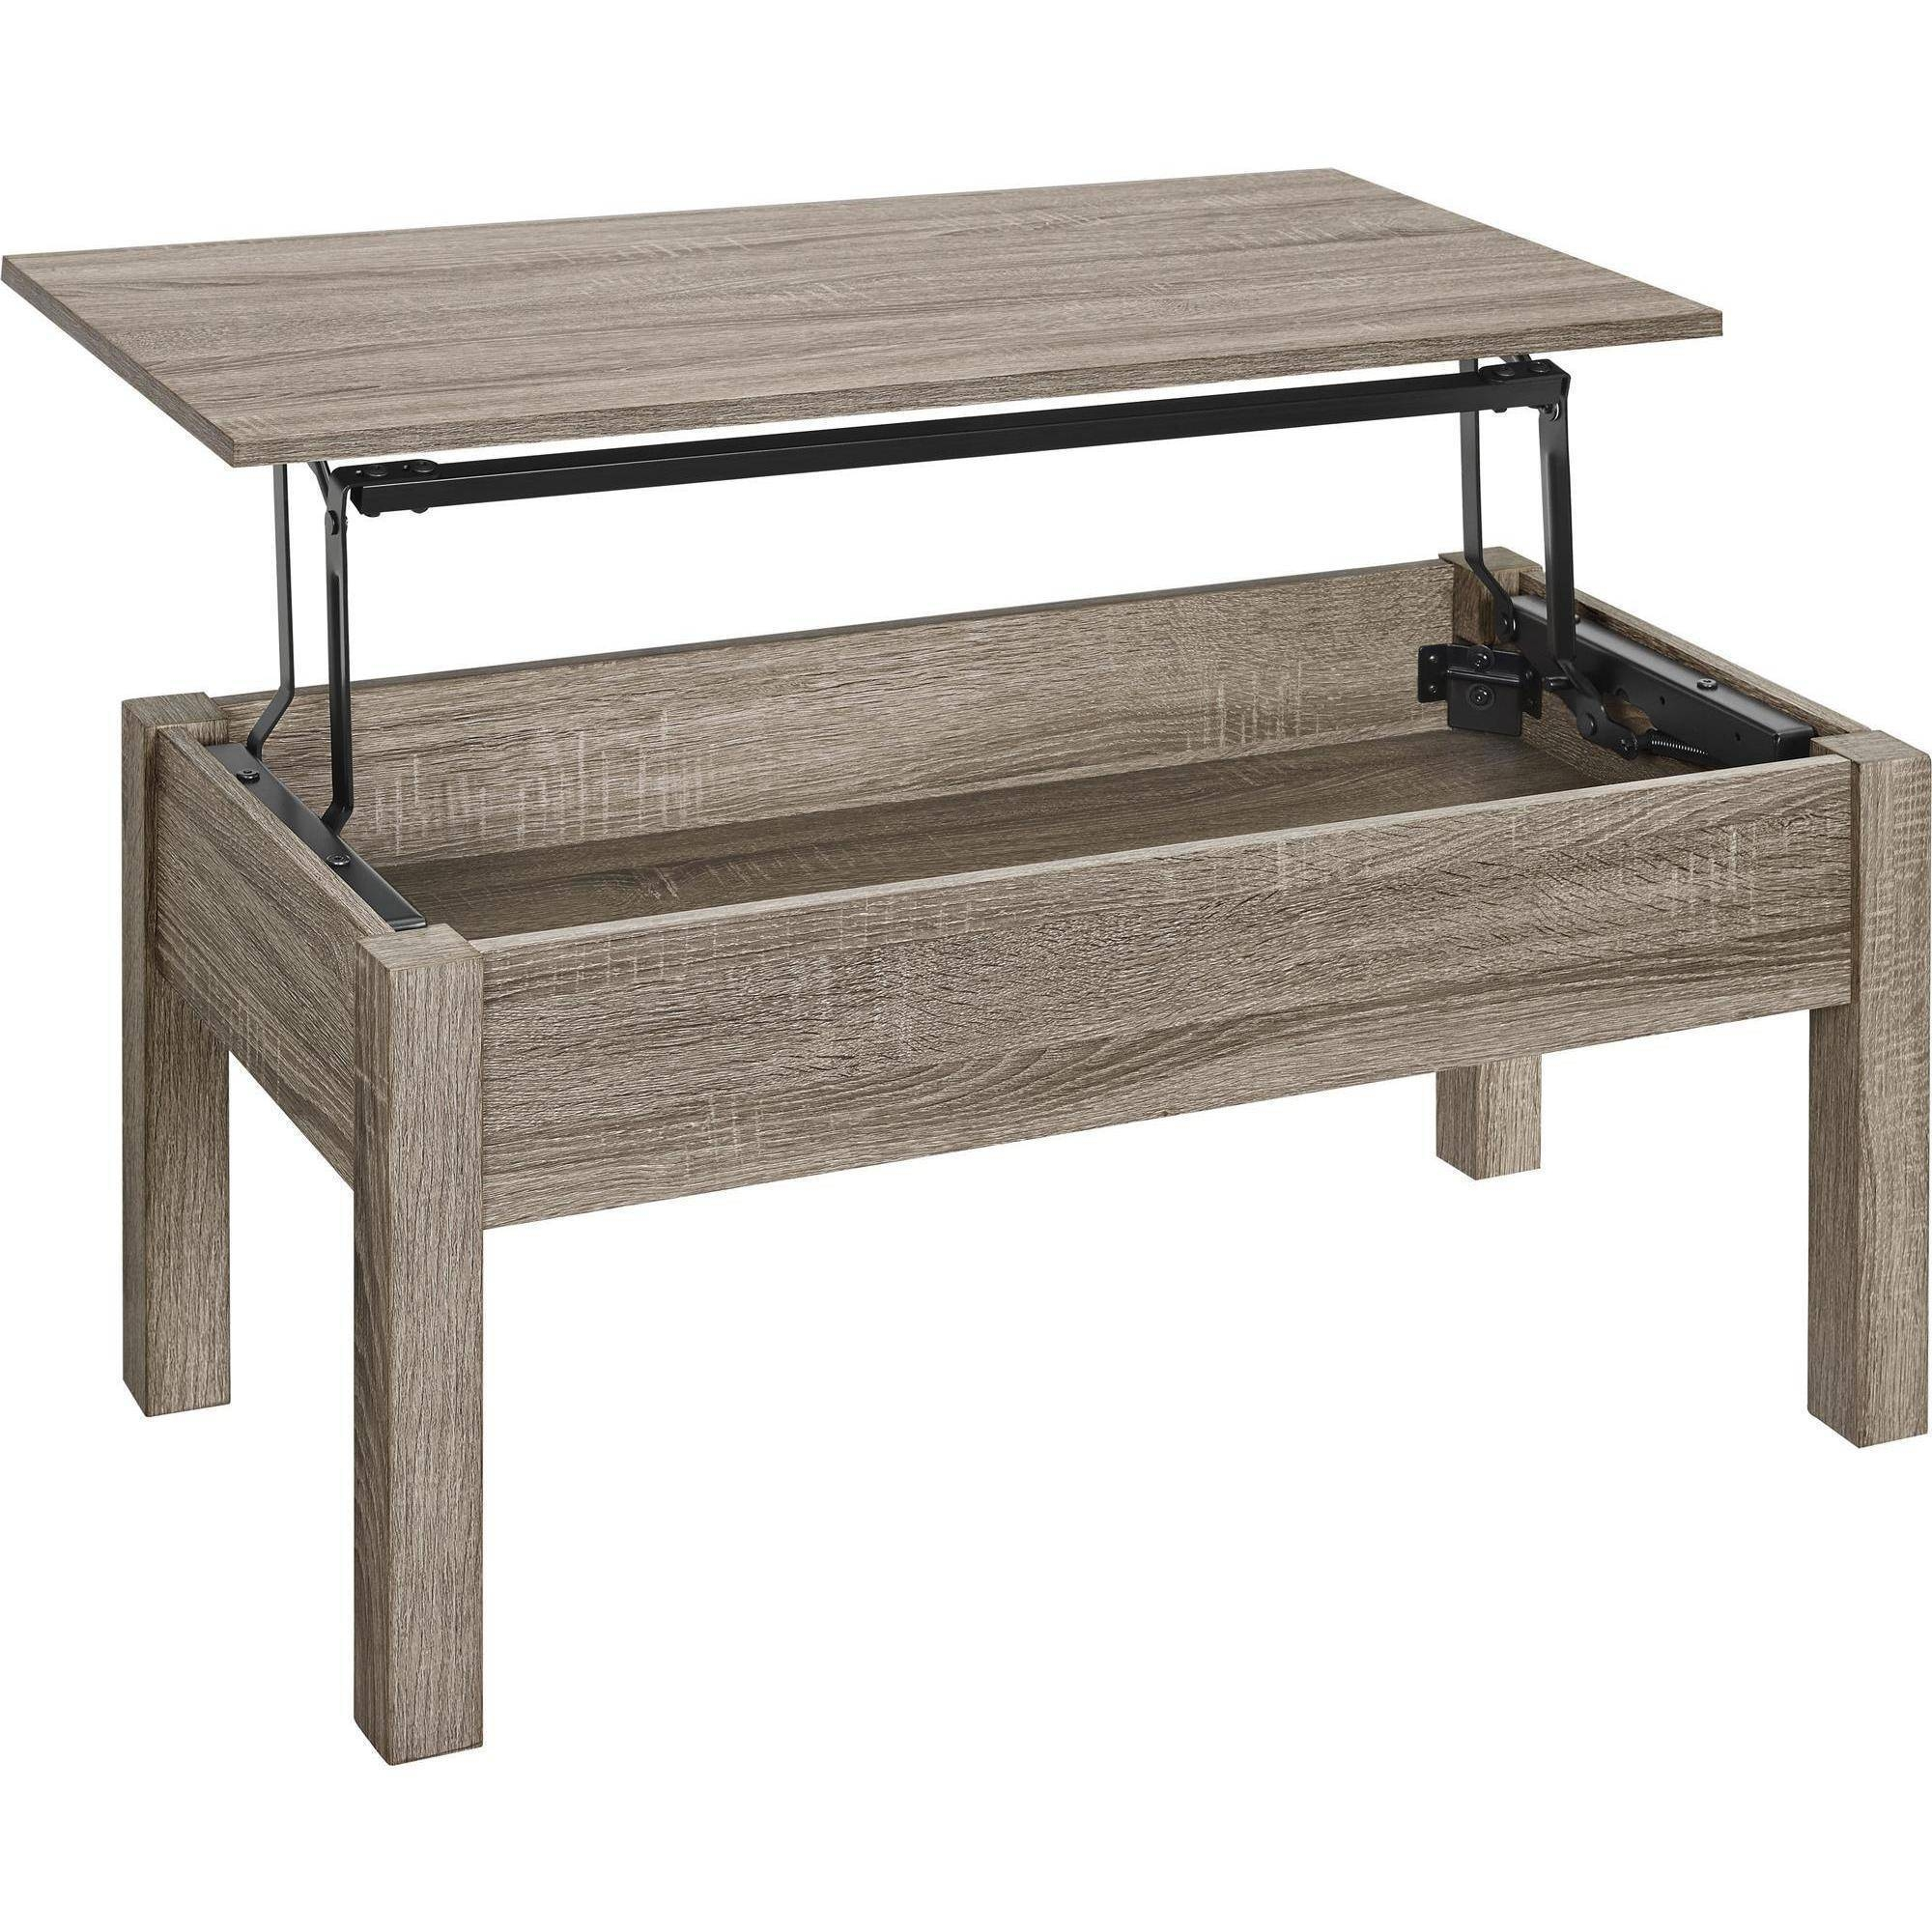 Mainstays Lift Top Coffee Table, Multiple Colors – Walmart With Regard To Raise Up Coffee Tables (View 7 of 30)